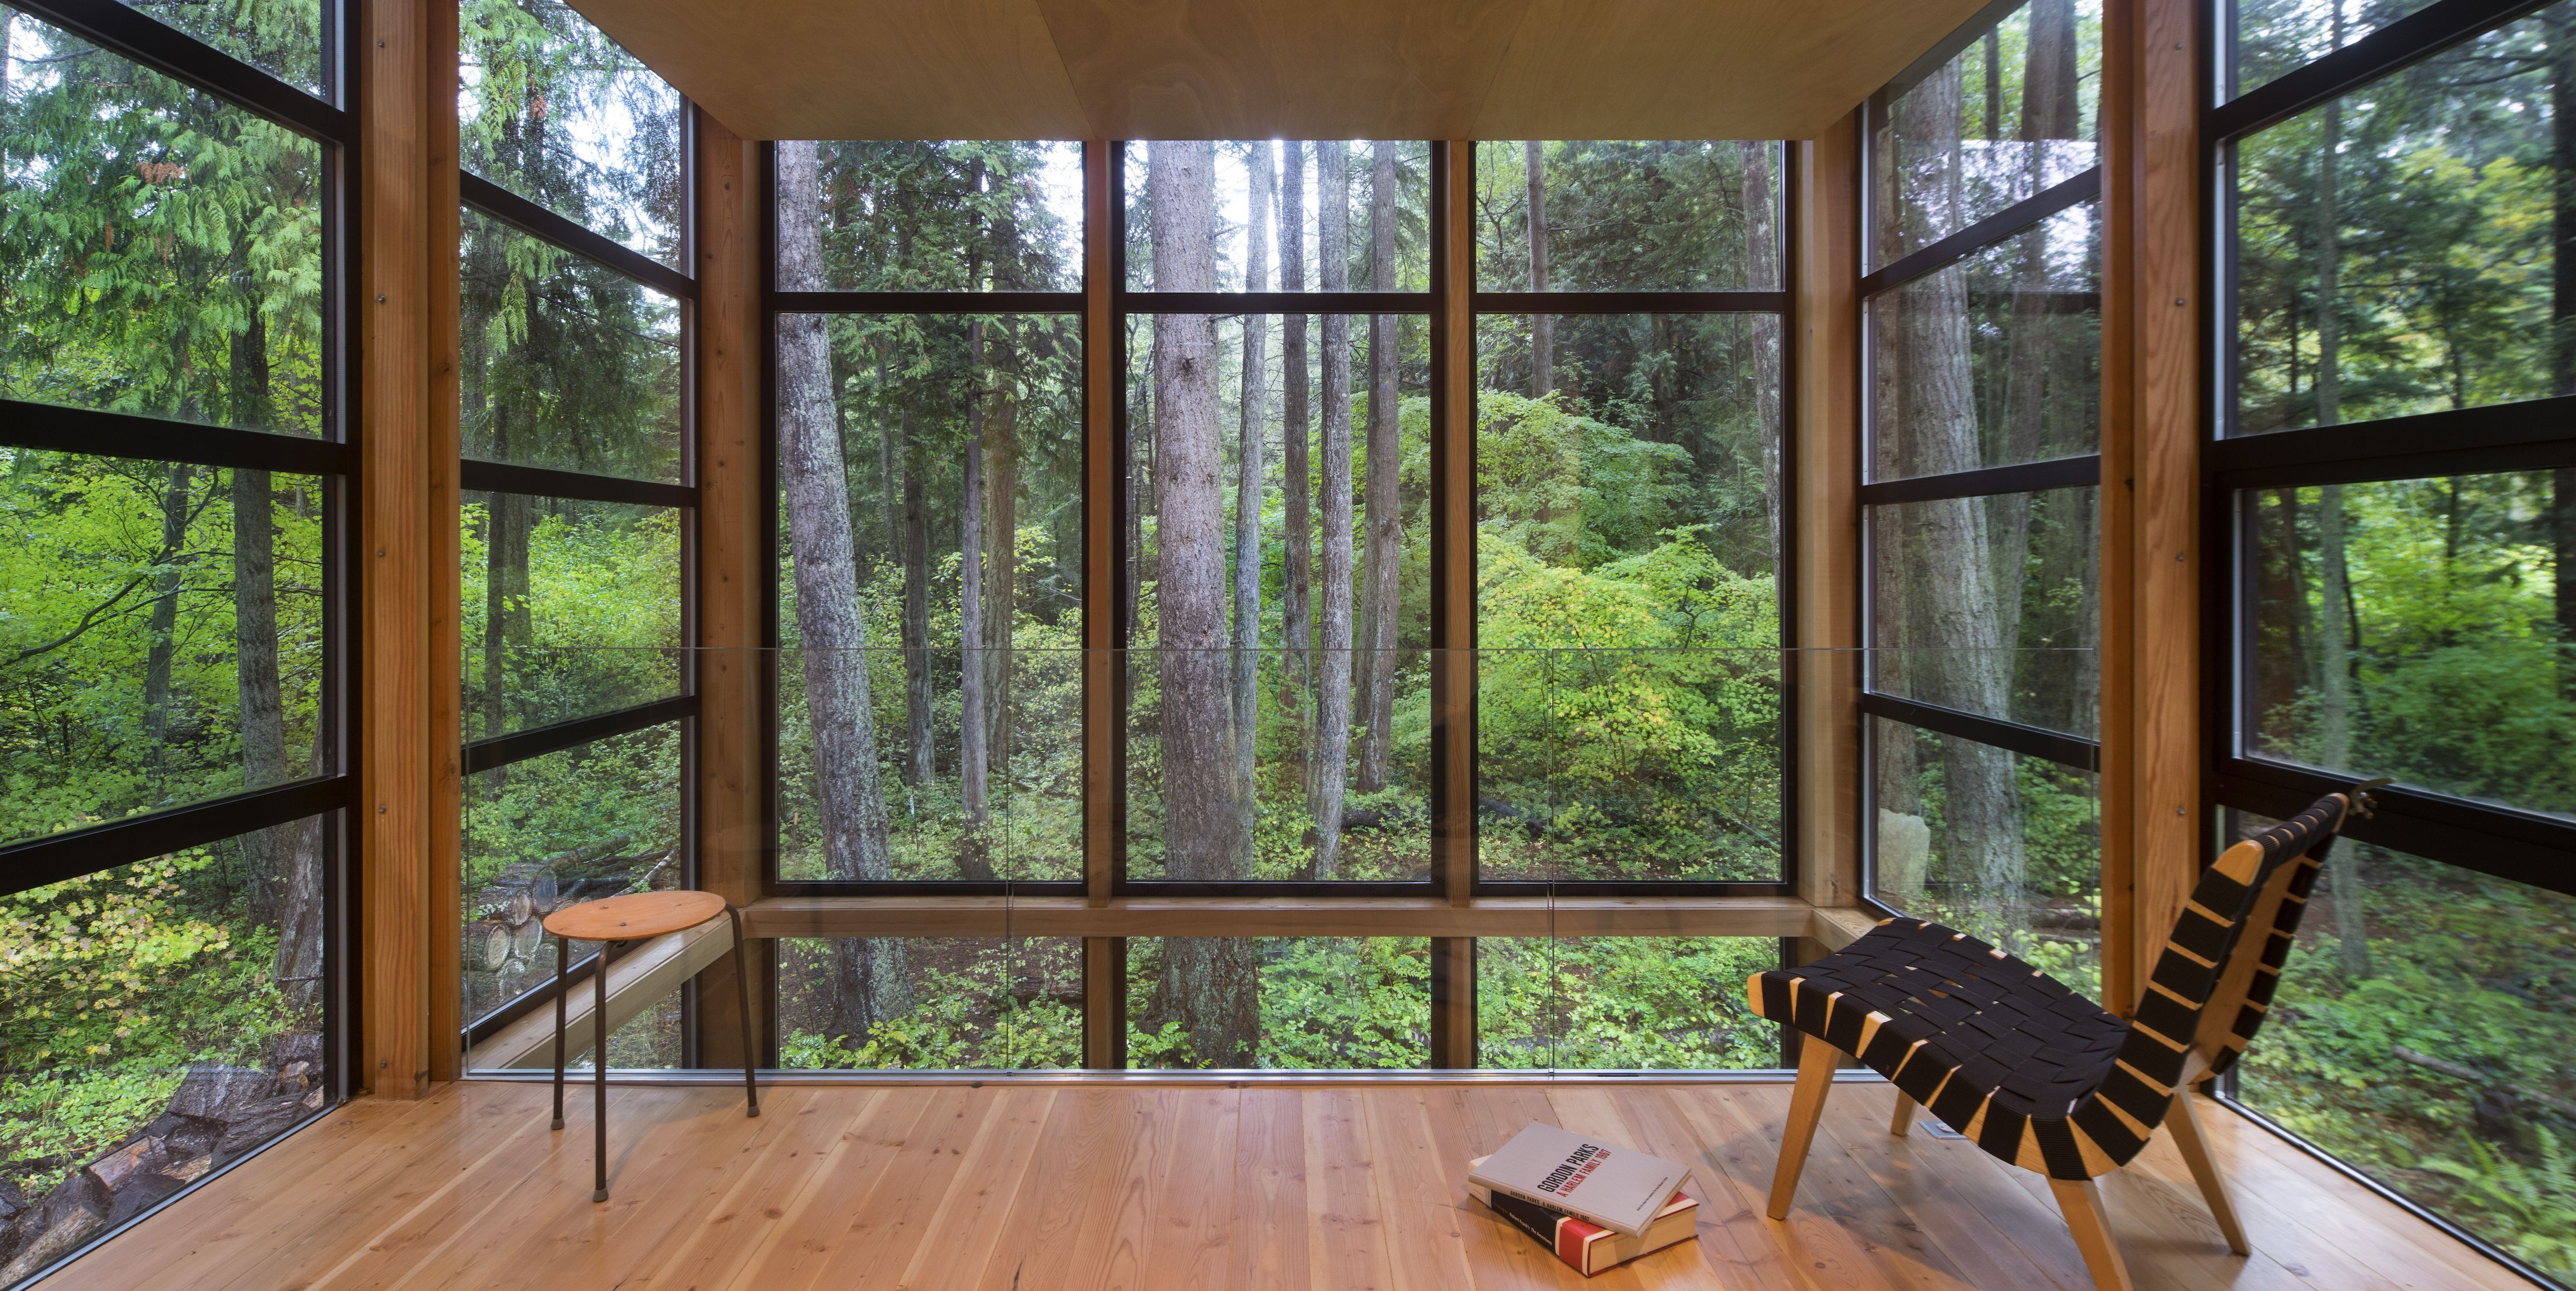 4 tiny home designs the american institute of architects 2017 small project awards